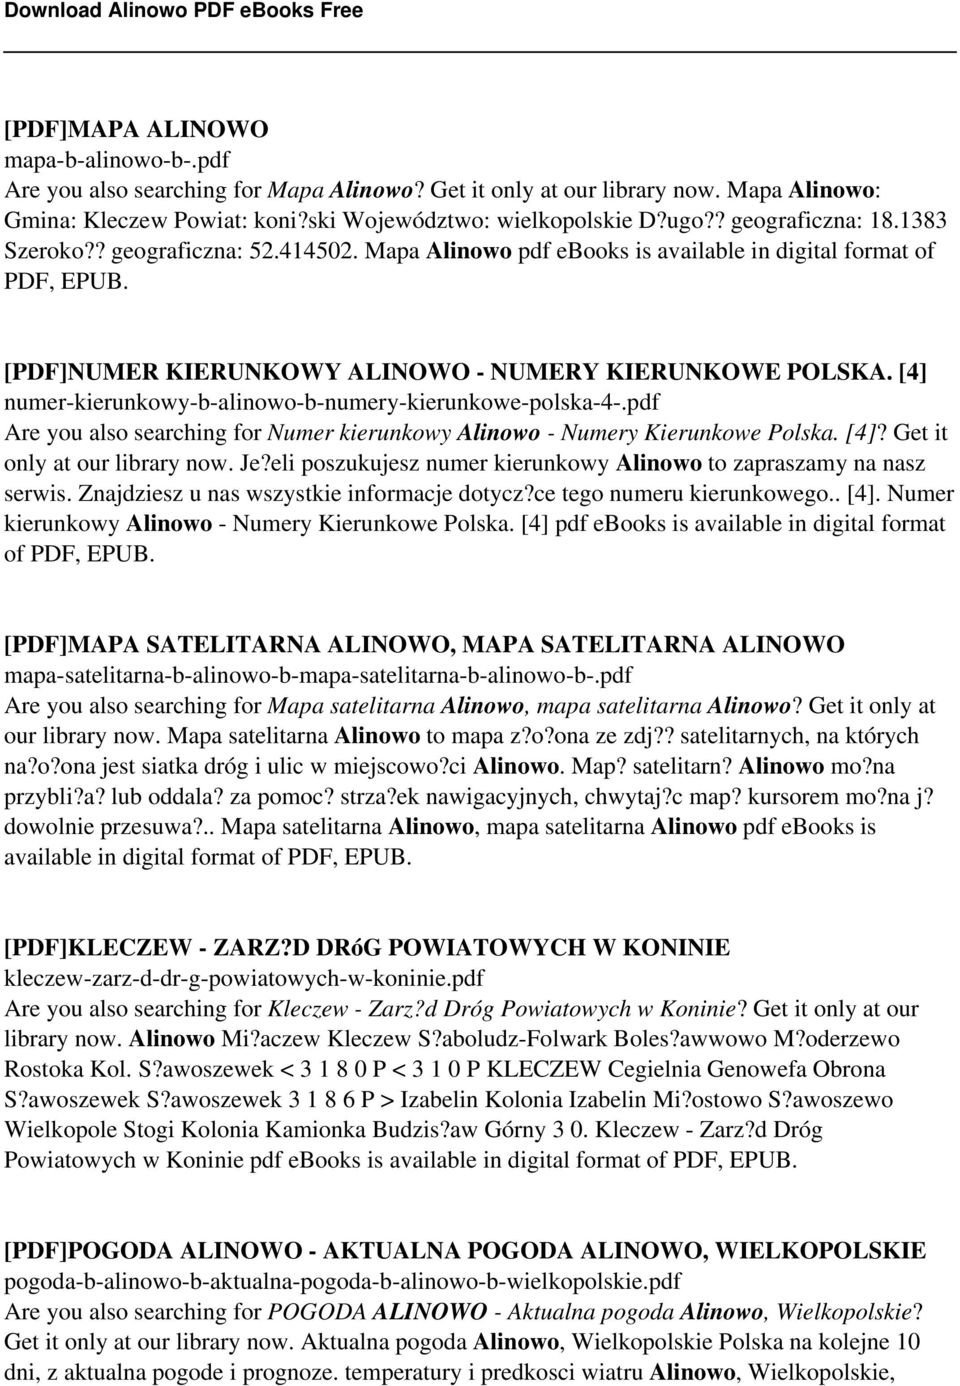 [4] numer-kierunkowy-b-alinowo-b-numery-kierunkowe-polska-4-.pdf Are you also searching for Numer kierunkowy Alinowo - Numery Kierunkowe Polska. [4]? Get it only at our library now. Je?